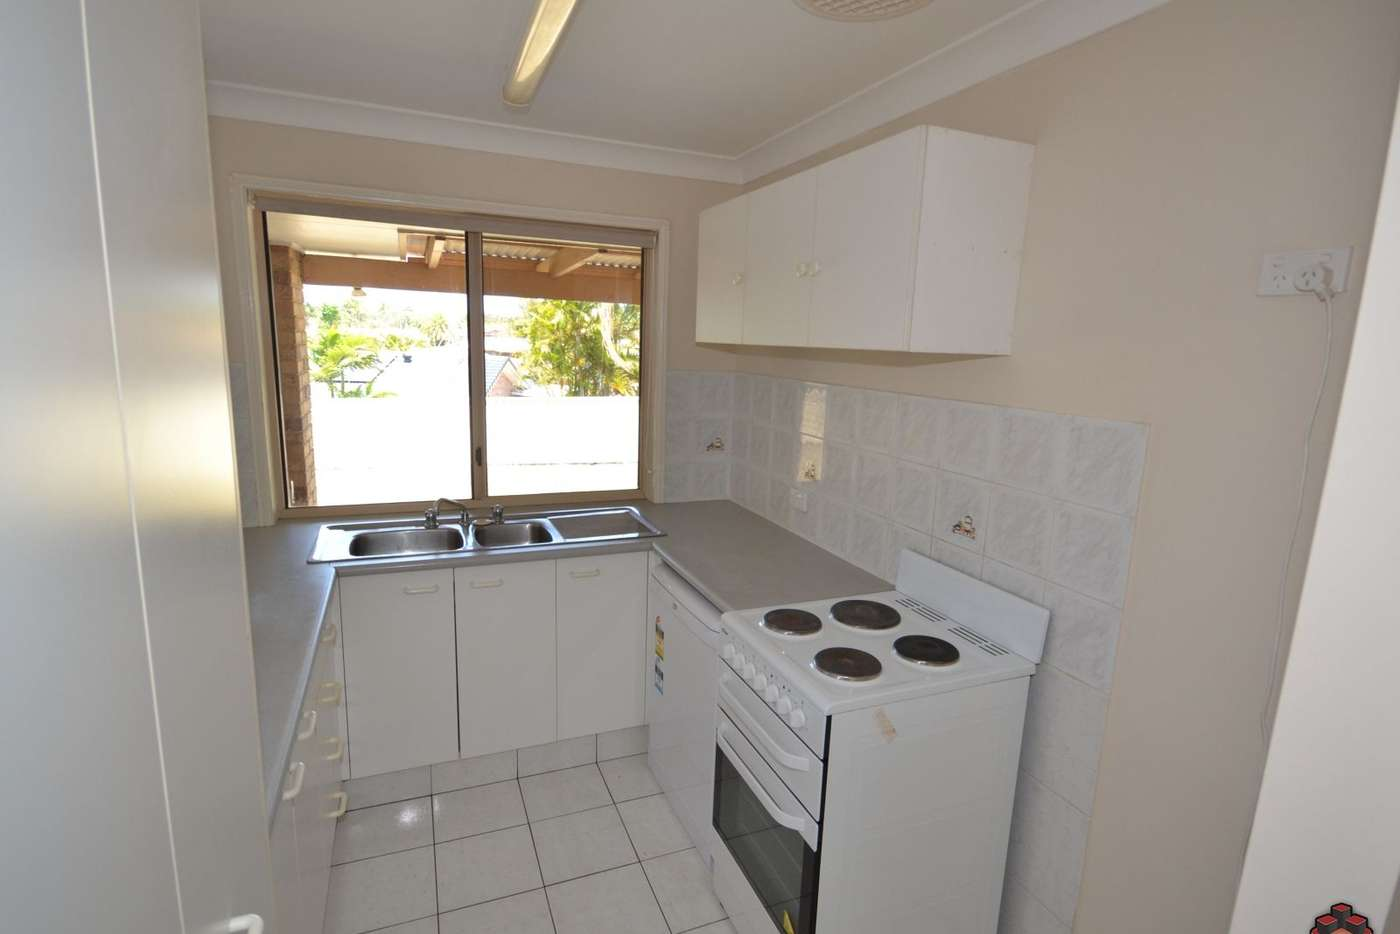 Seventh view of Homely house listing, 141 Mildura Drive, Helensvale QLD 4212